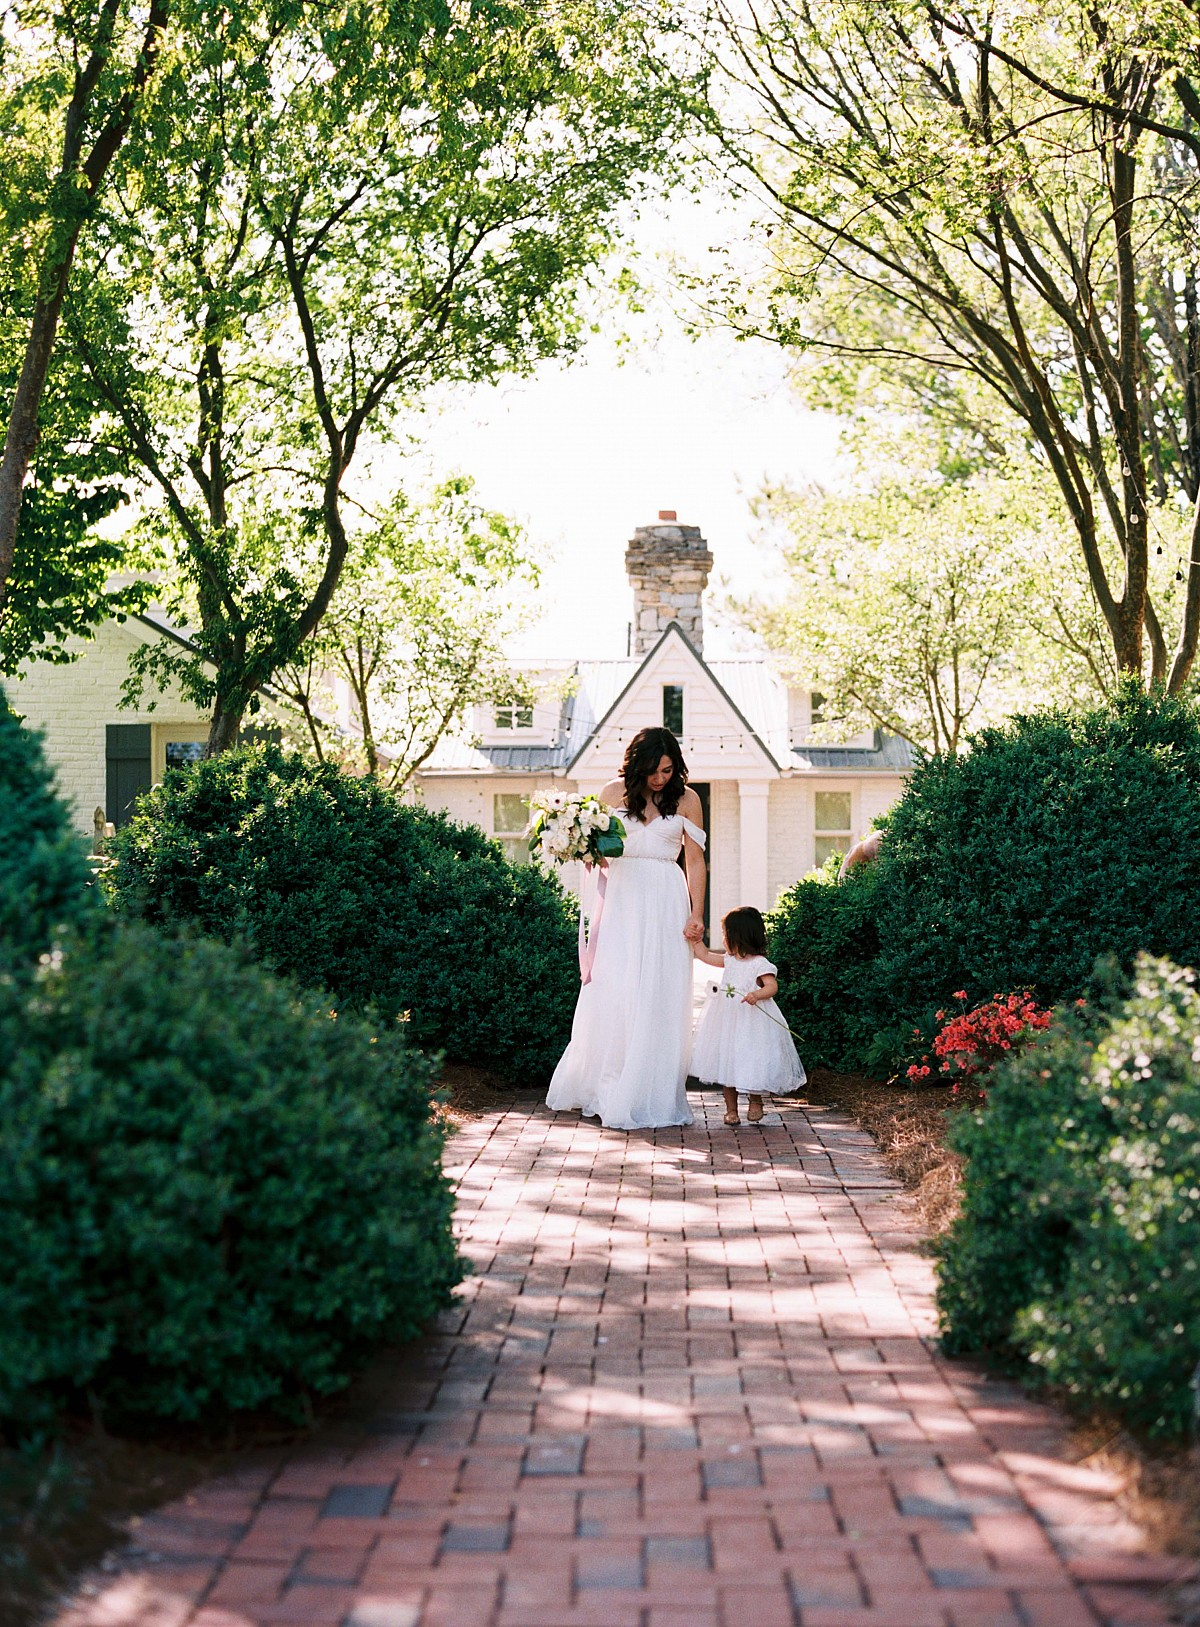 Ashtin and Travis' Heartfelt Nashville Wedding